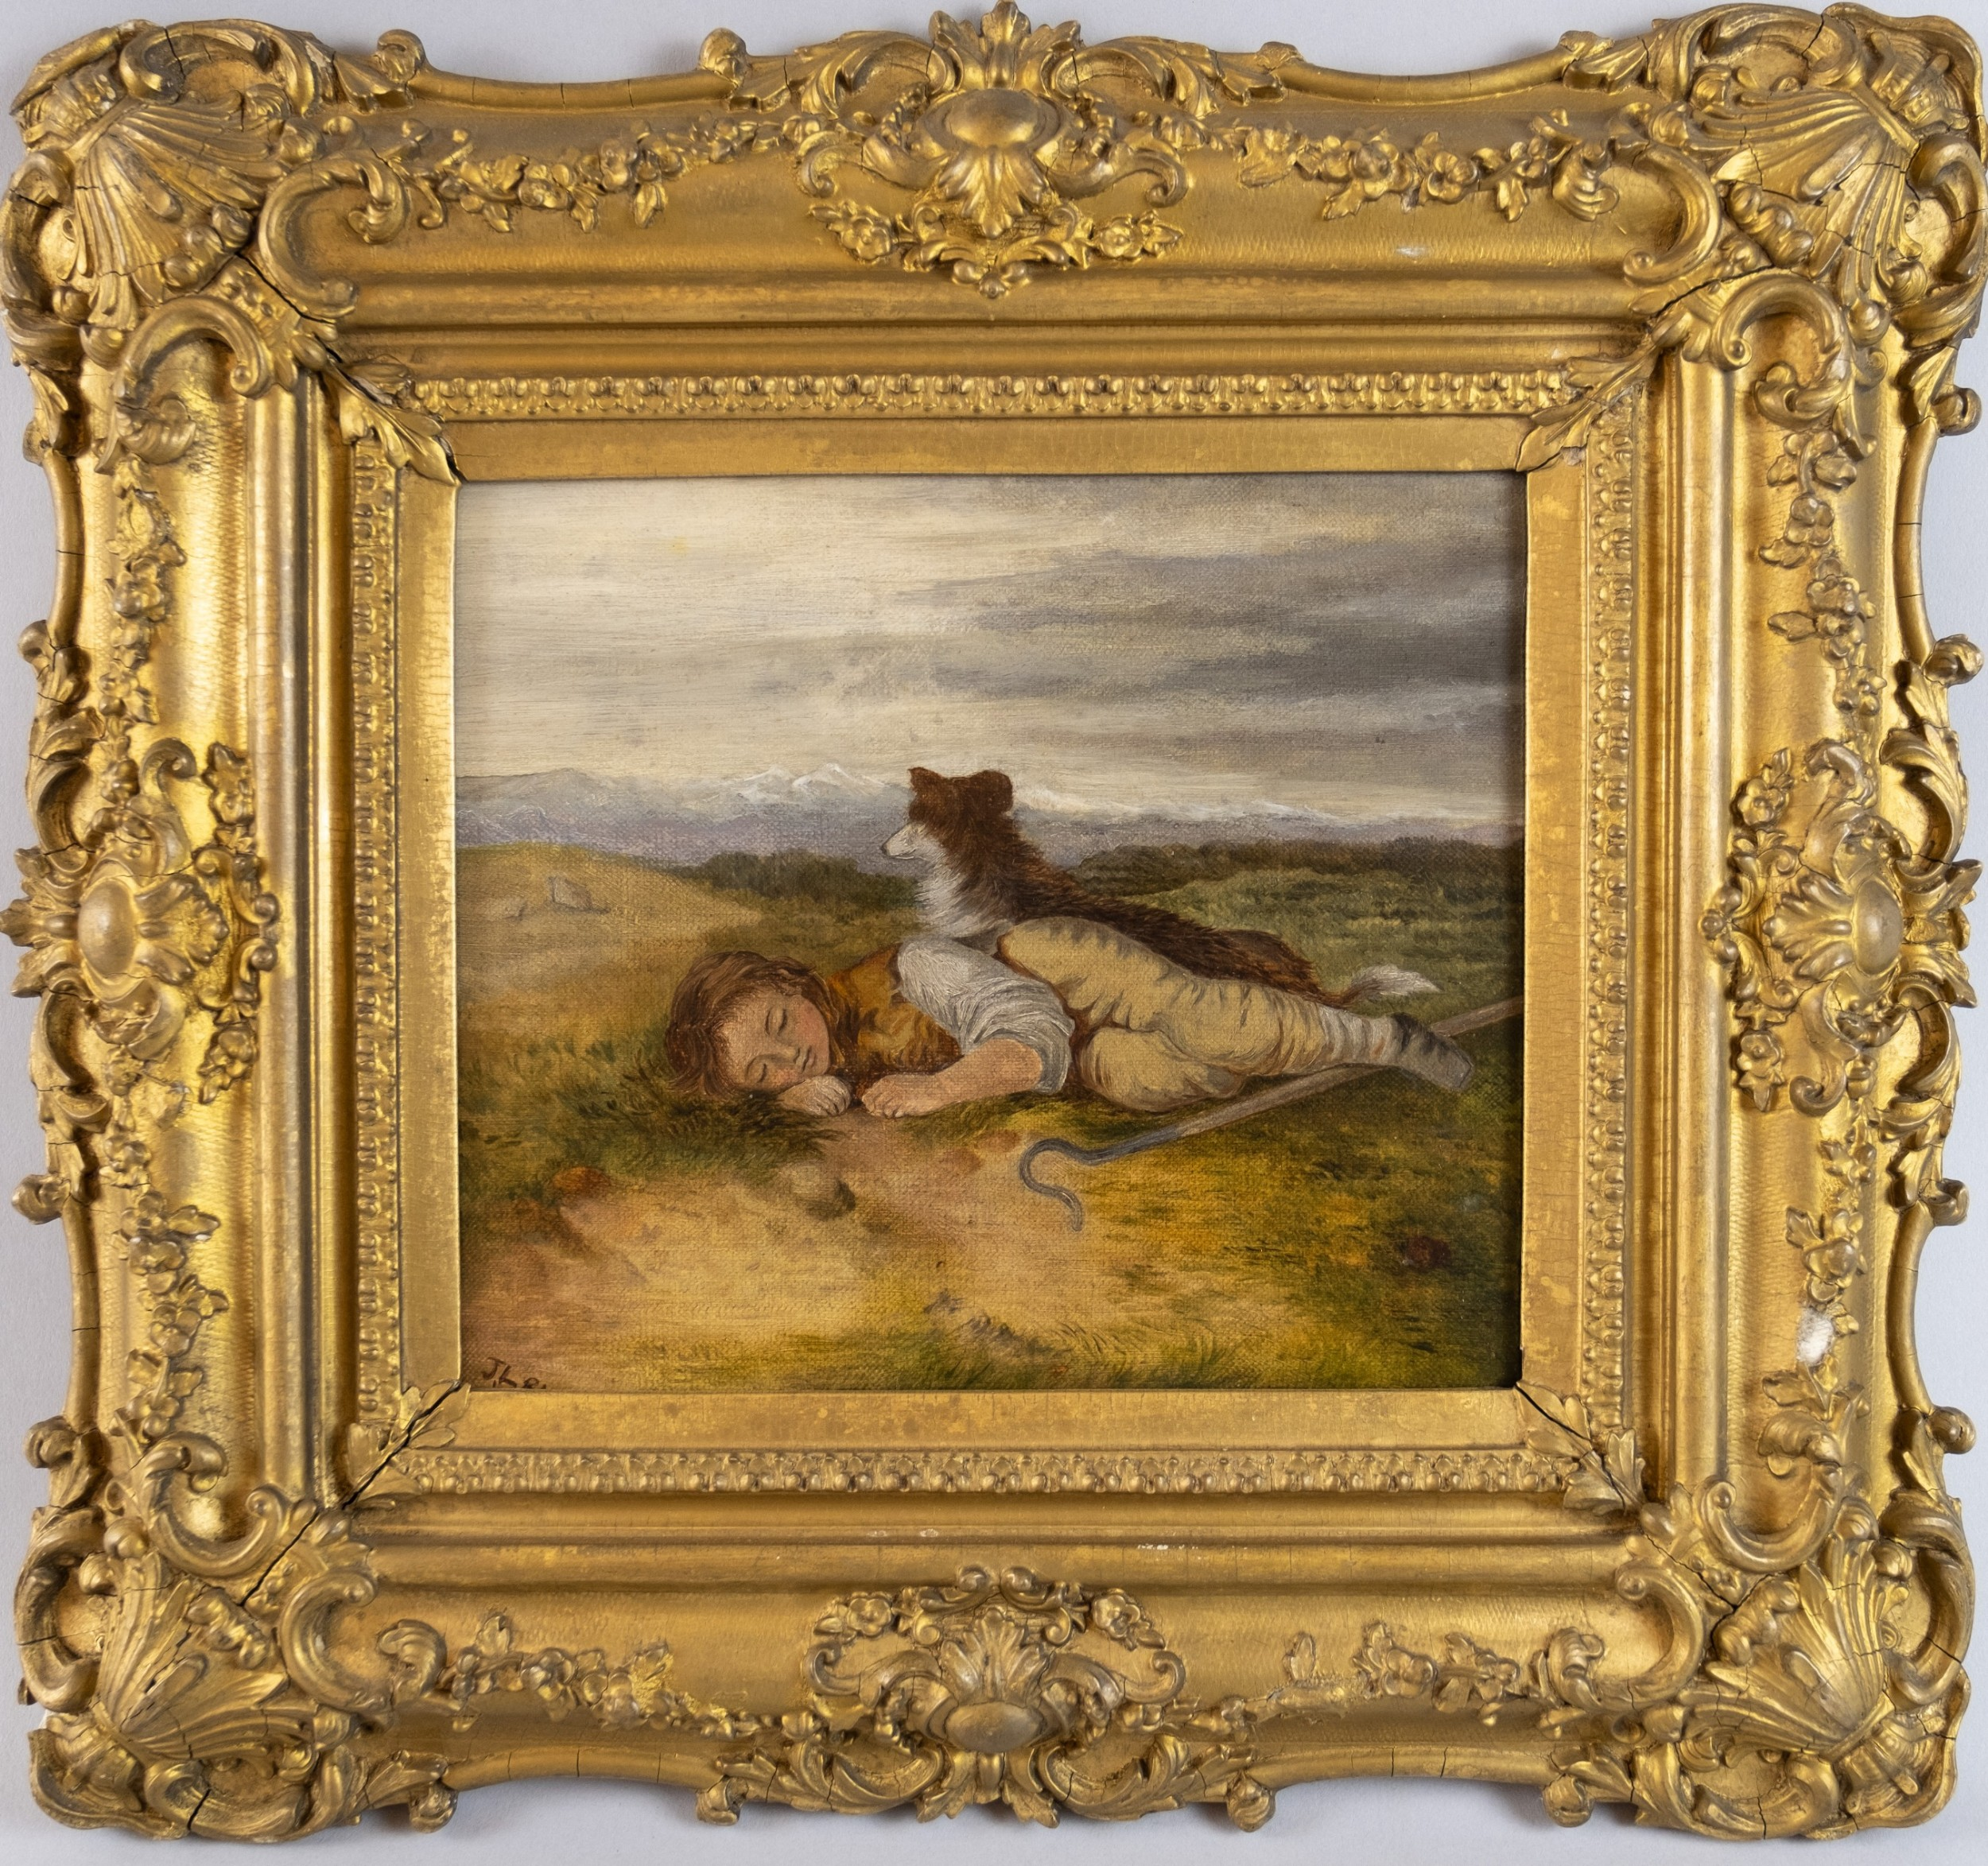 19th century oil on canvas resting shepherd dog in landscape signed dated english school